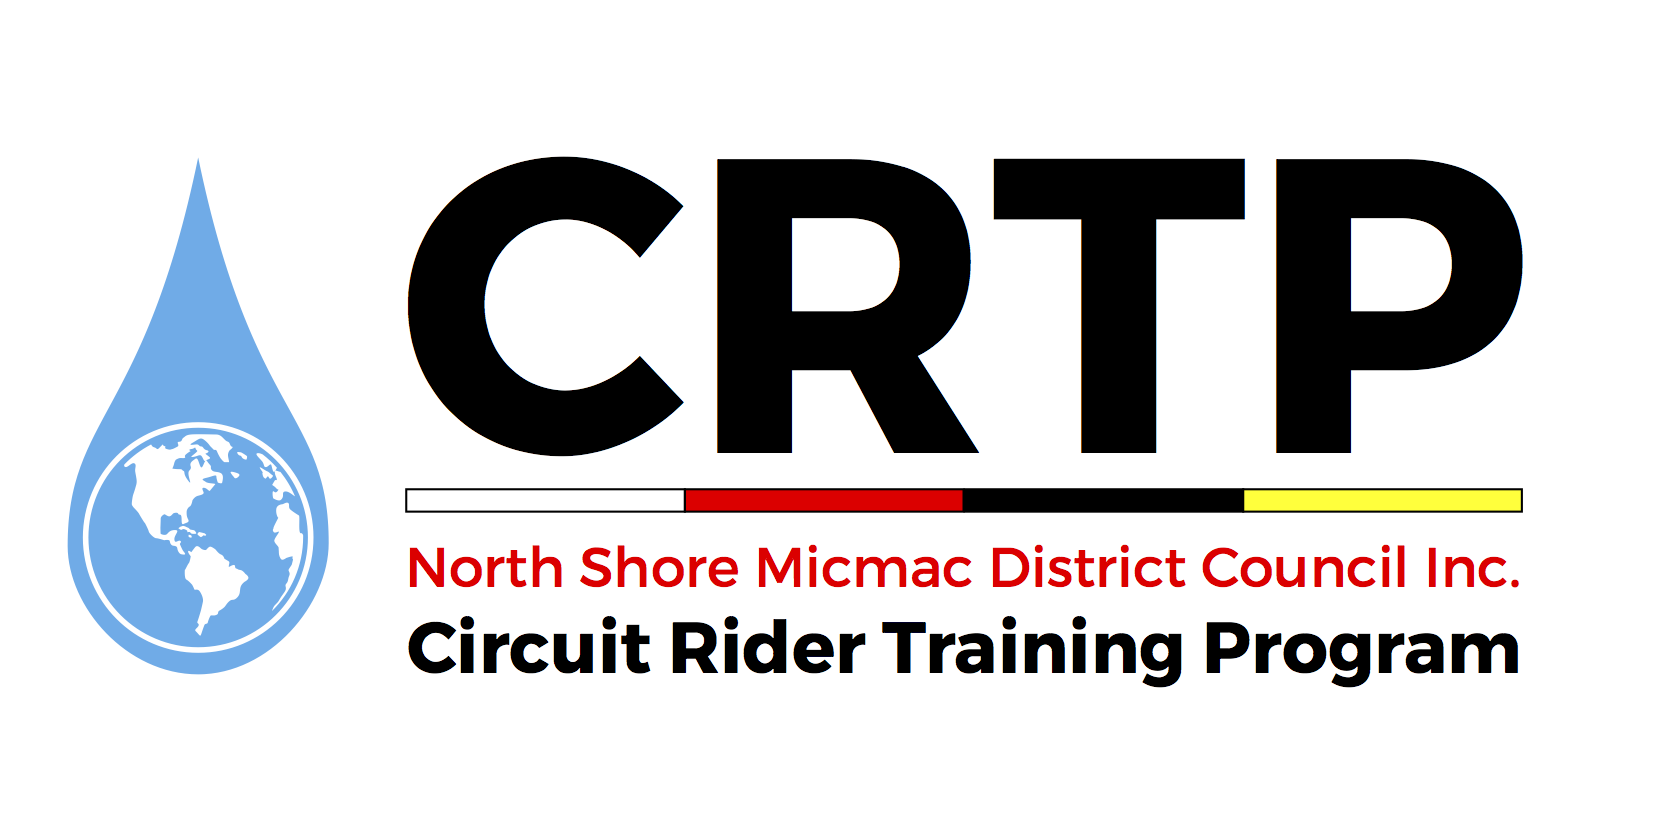 Circuit Rider Training Program